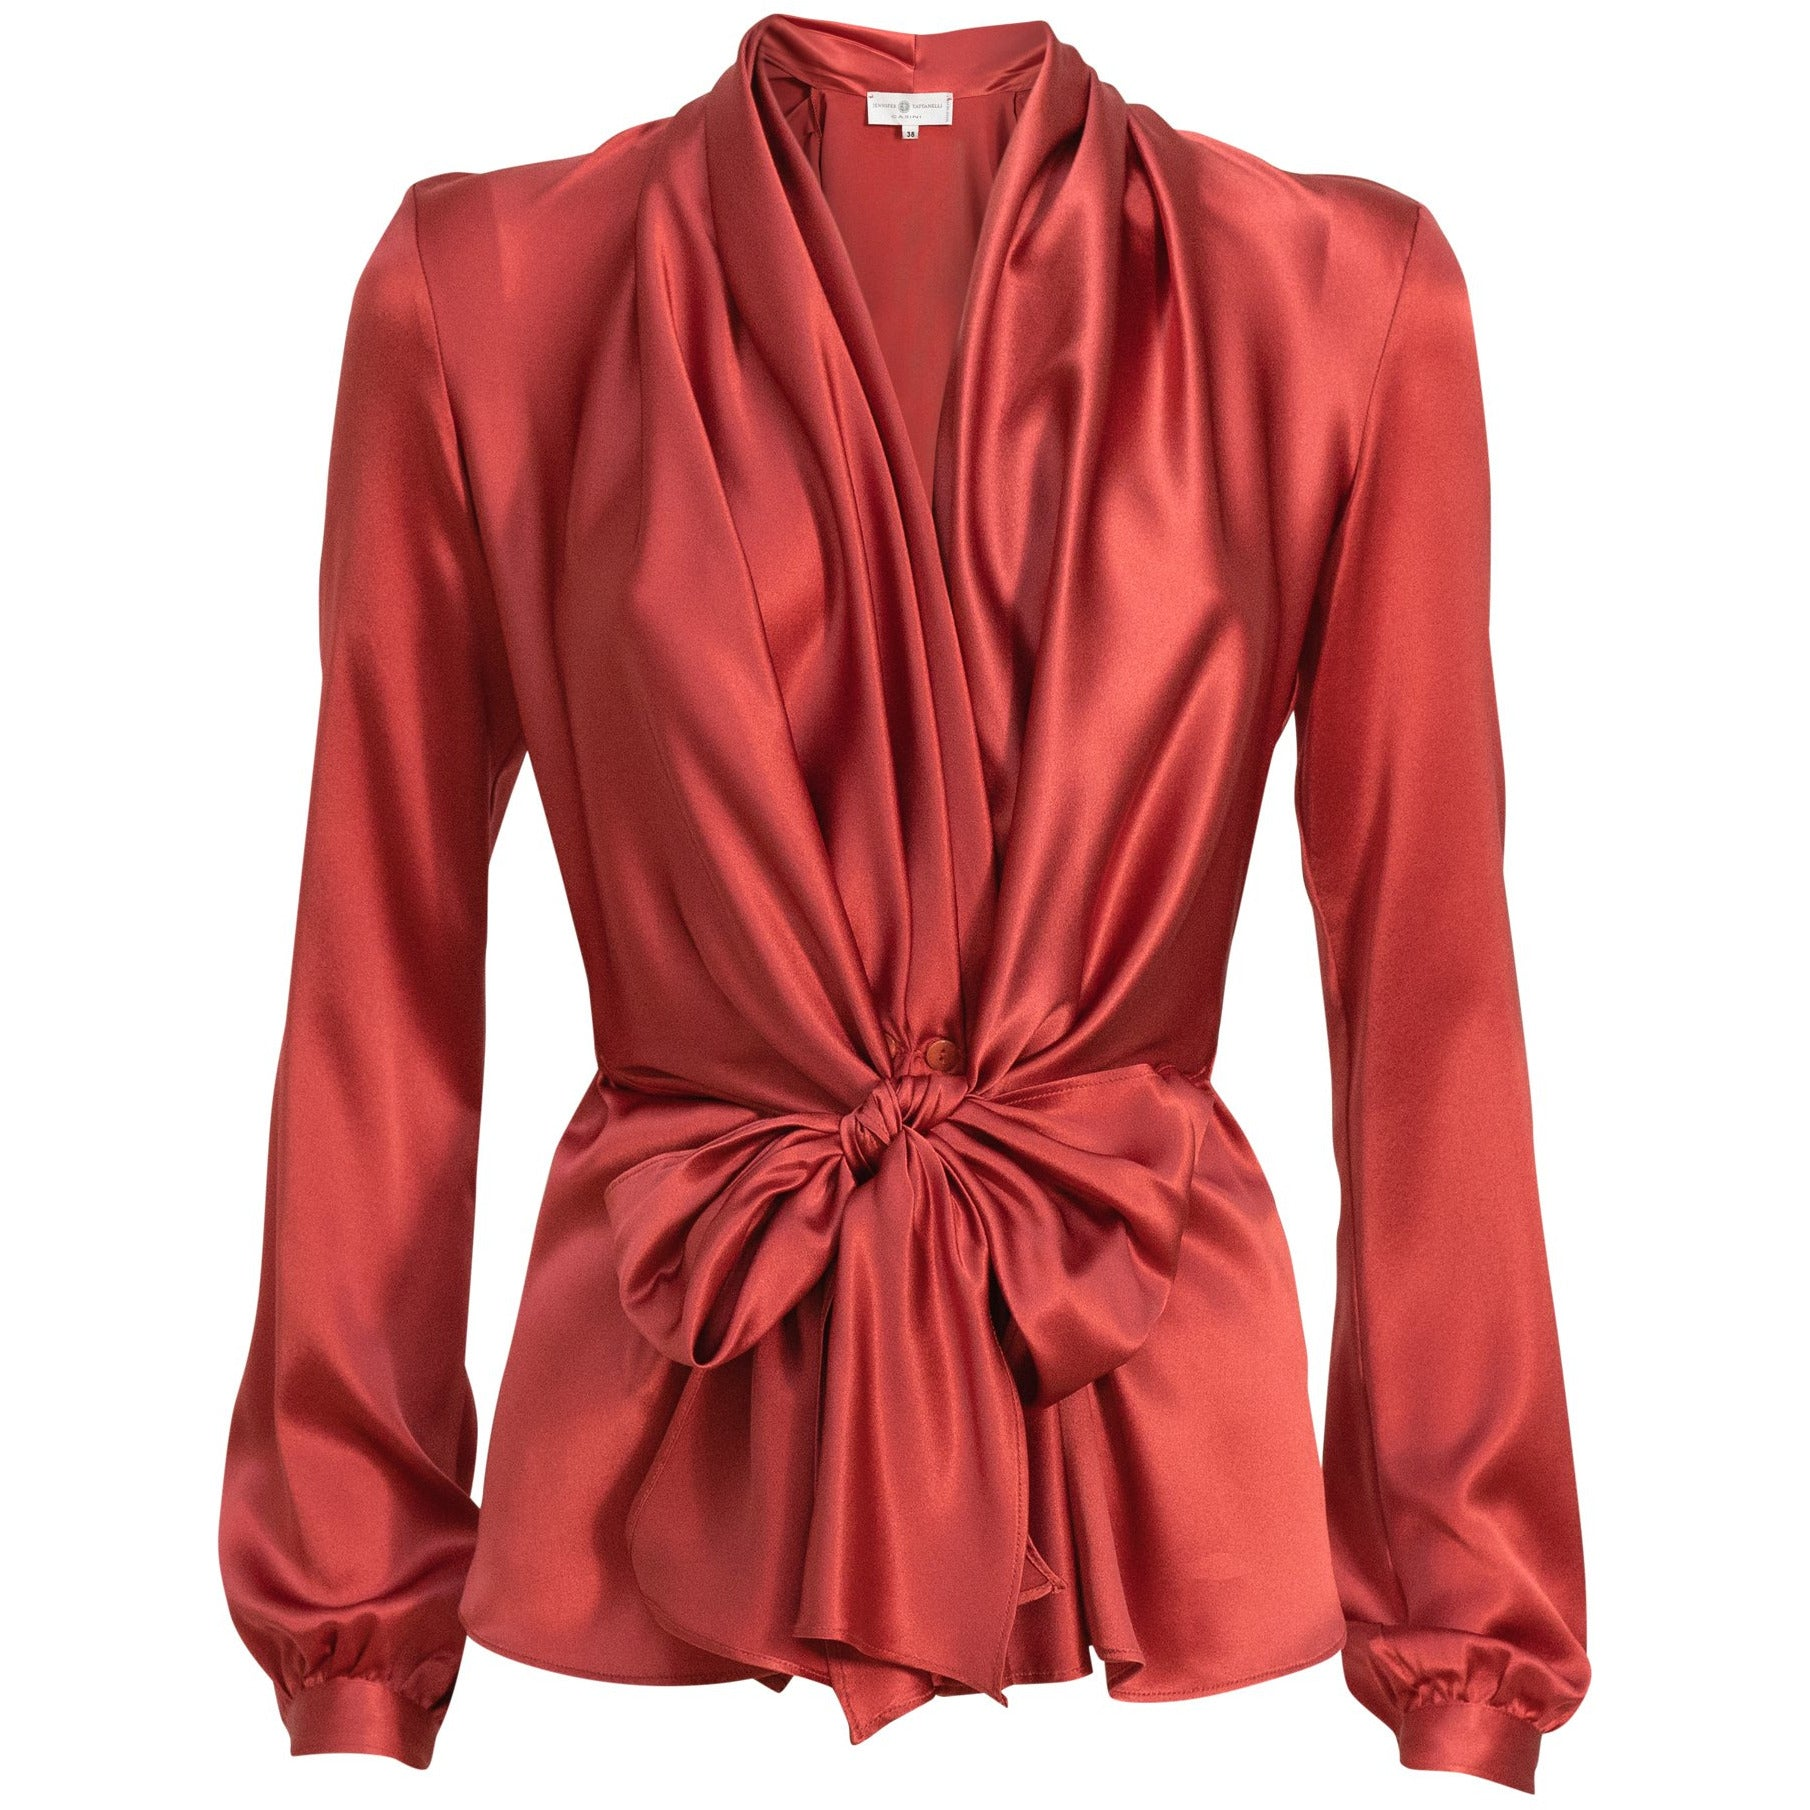 Long Sleeve Silk Blouse with Sash in Red - Jennifer Tattanelli